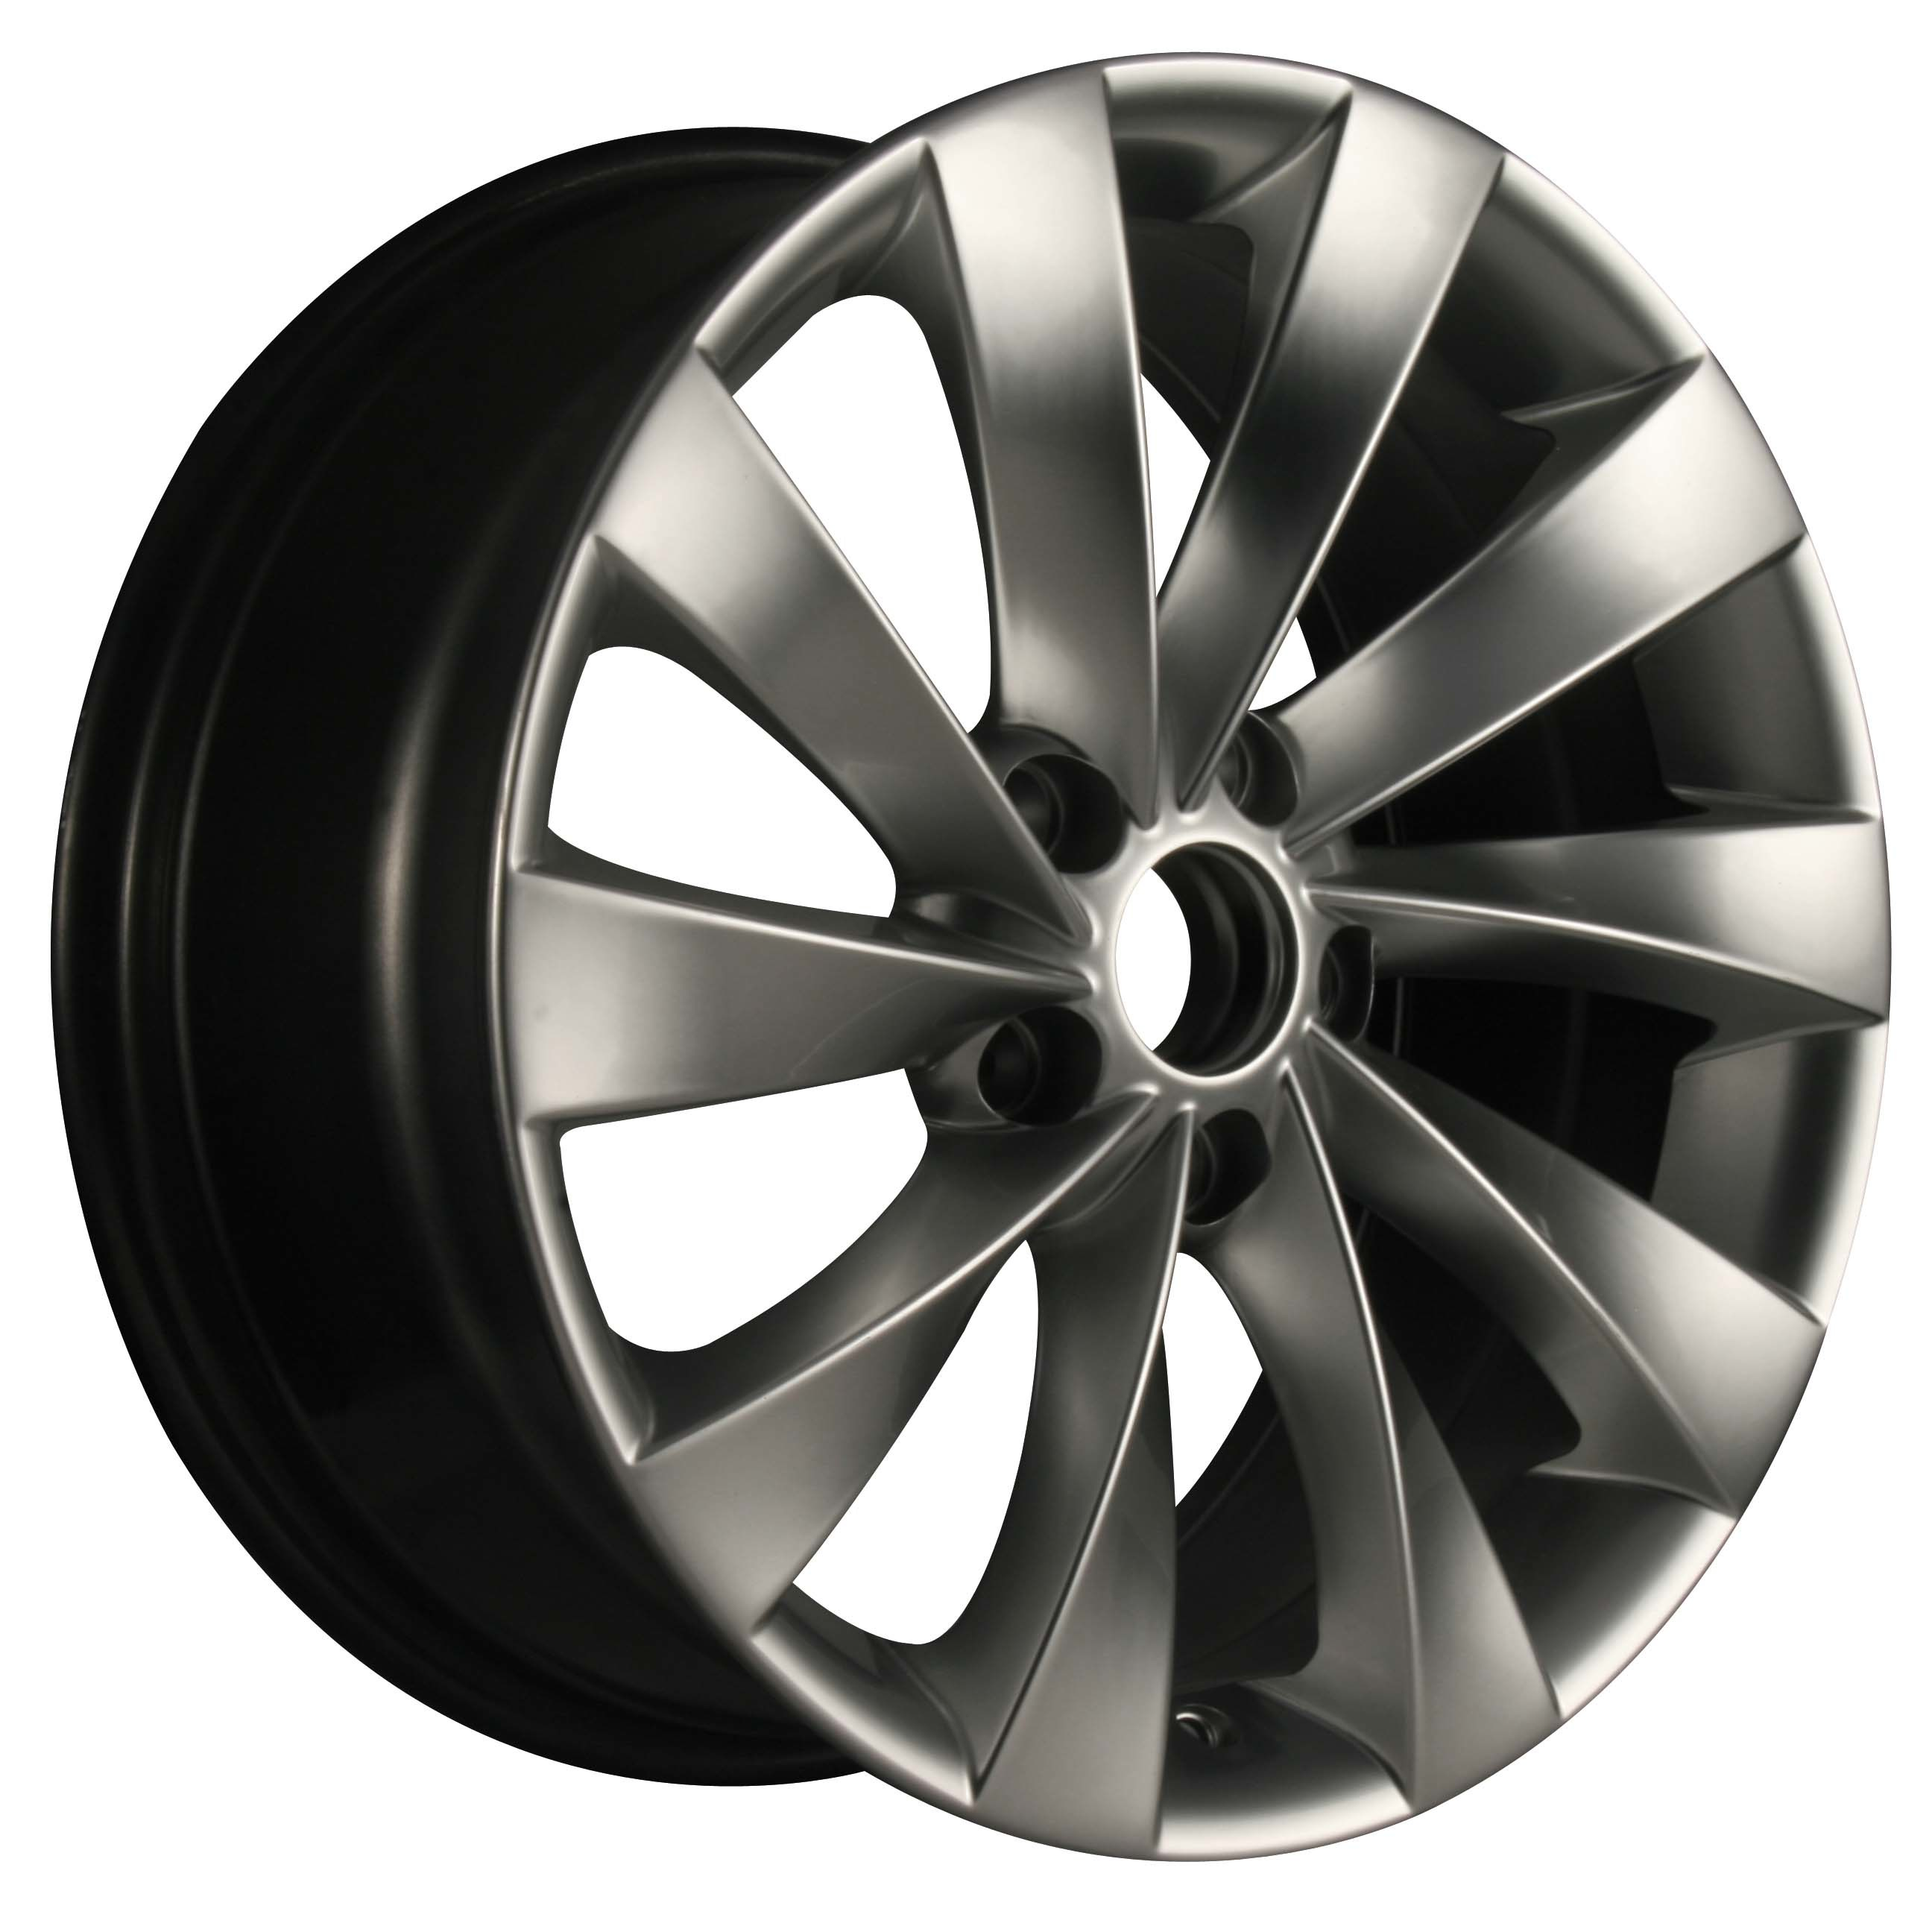 14inch-18inch Alloy Wheel Replica Wheel for VW Cc